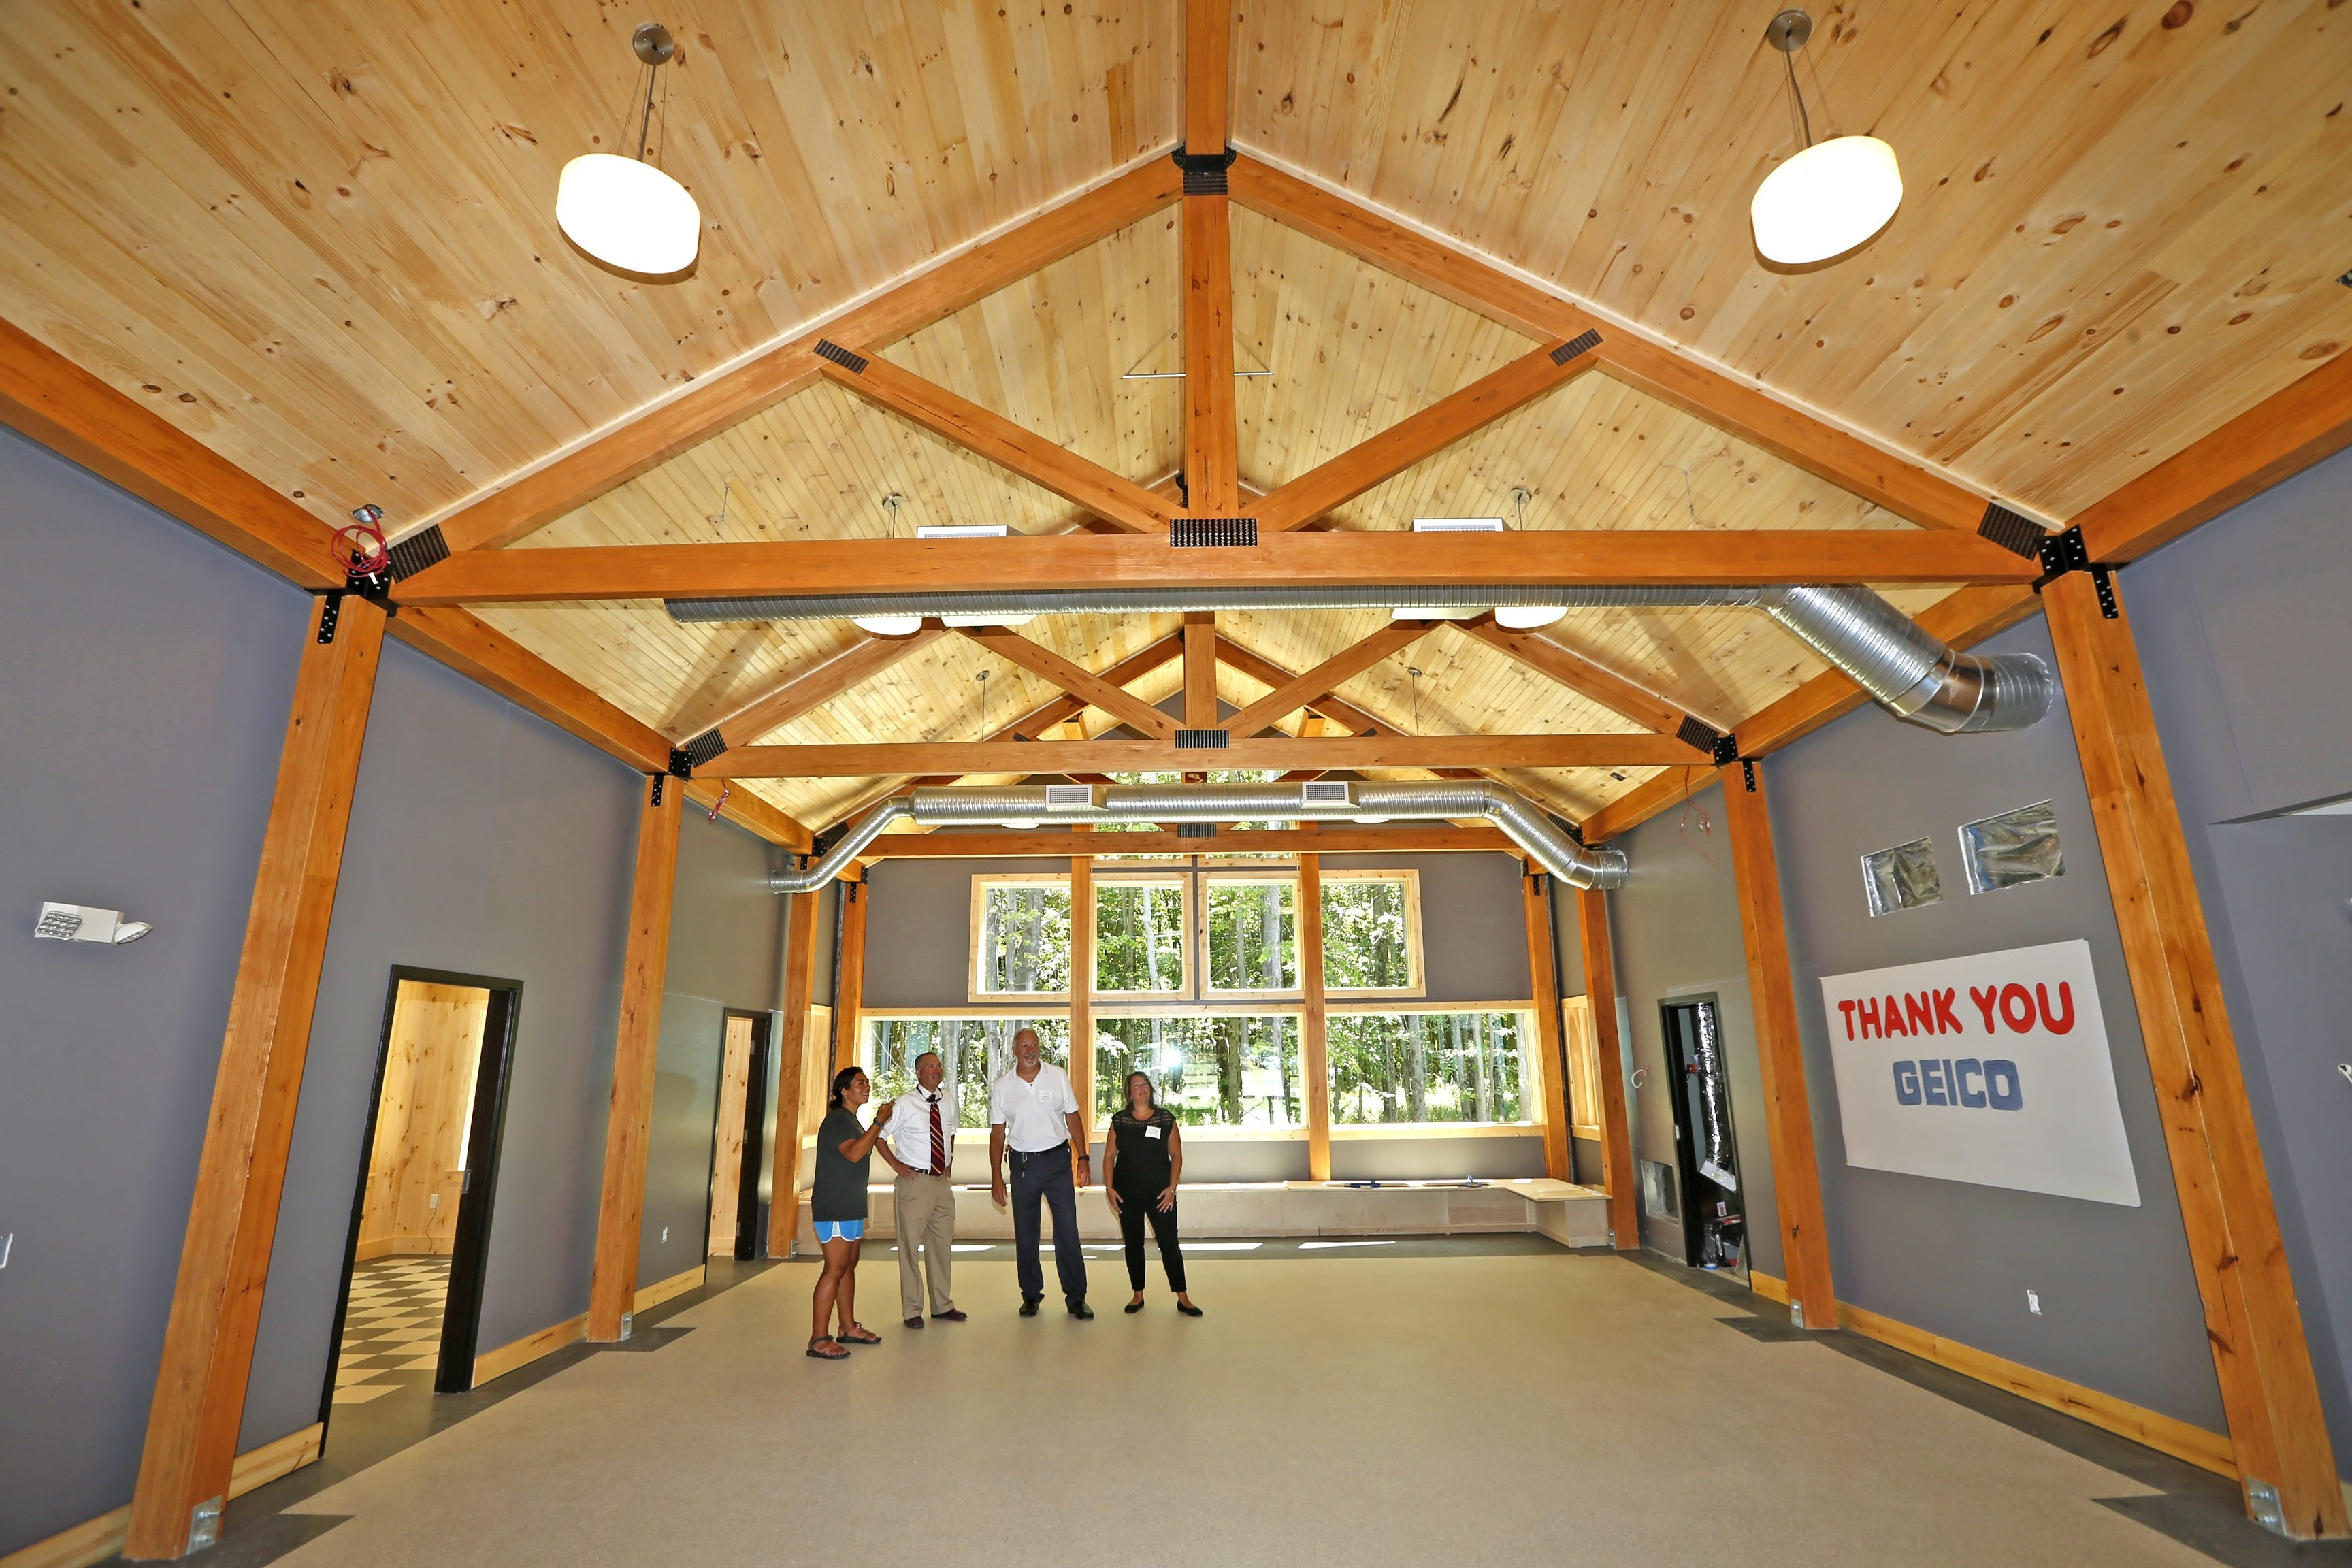 Officials show off the main hall of the new GEICO Woodland Lodge at Cradle Beach in Angola on Monday. The 4,500-square-foot building  is designed to accommodate 40 children and adults overnight. (Robert Kirkham/Buffalo News)